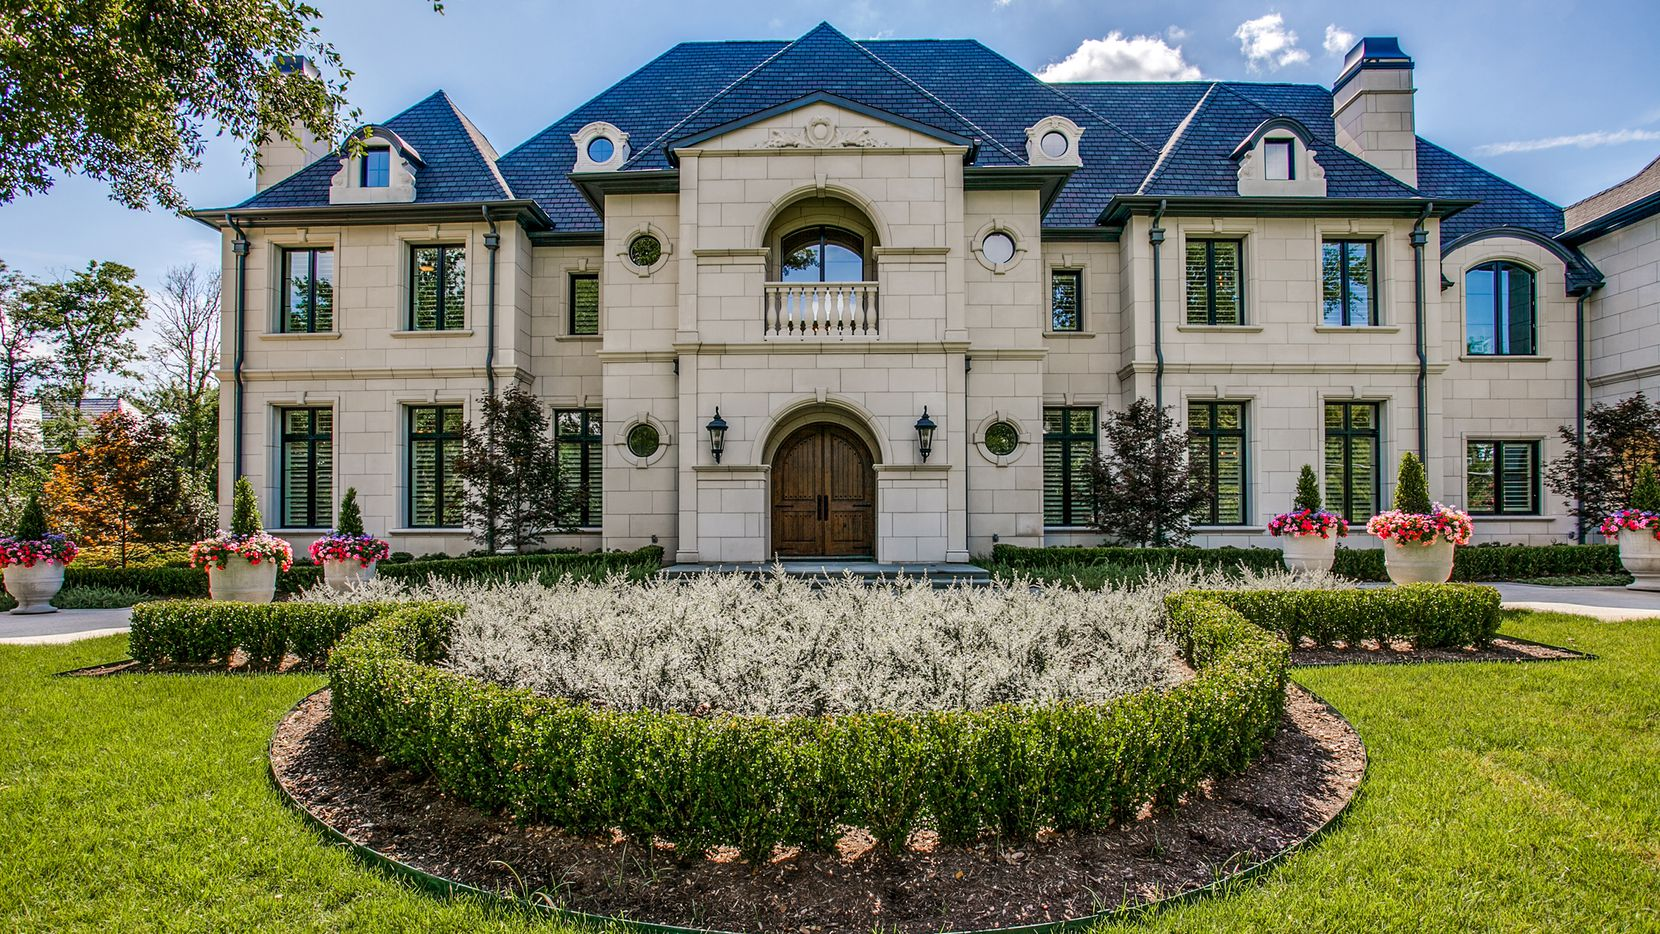 The estate at 10515 Lennox Lane was built in 2018. Features include six bedrooms, a top-of-the-line kitchen and a five-car garage with outlets for electric cars.